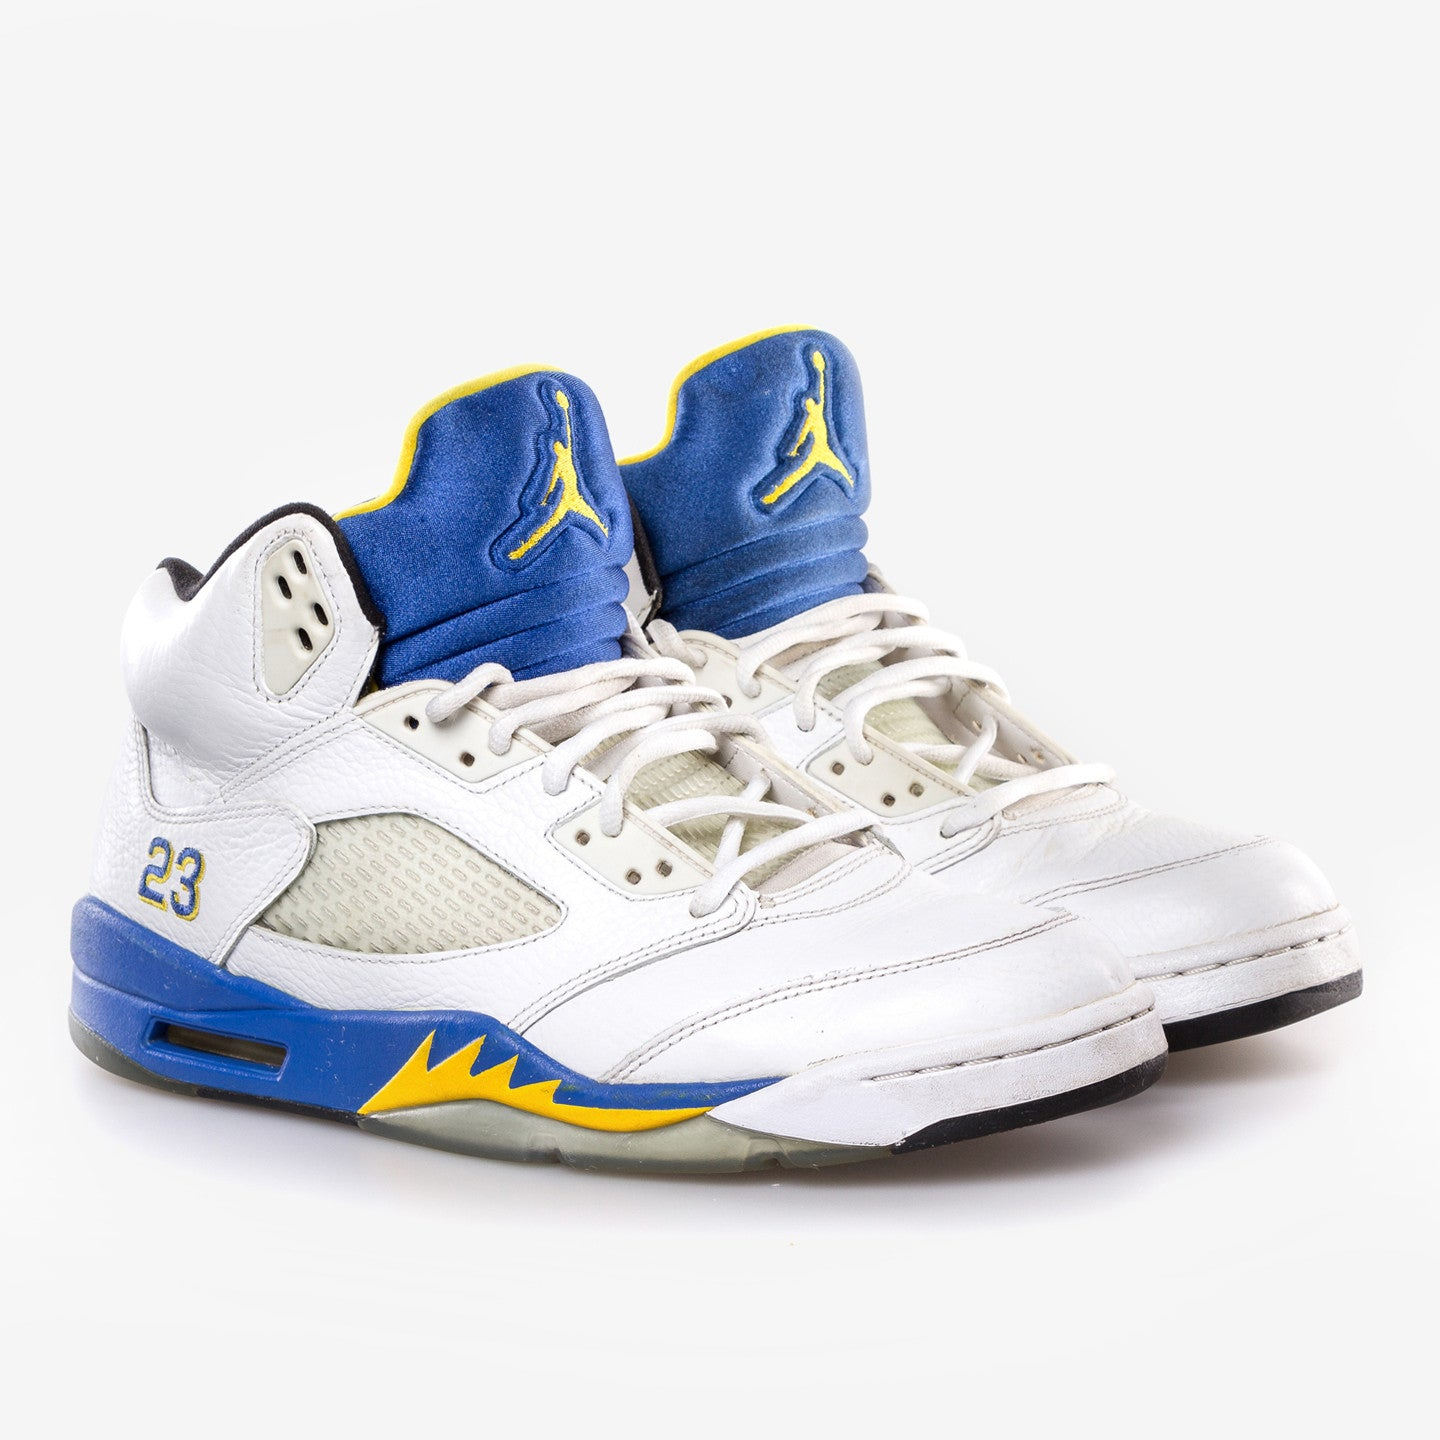 Jordan / 5 Retro Laney (2013)